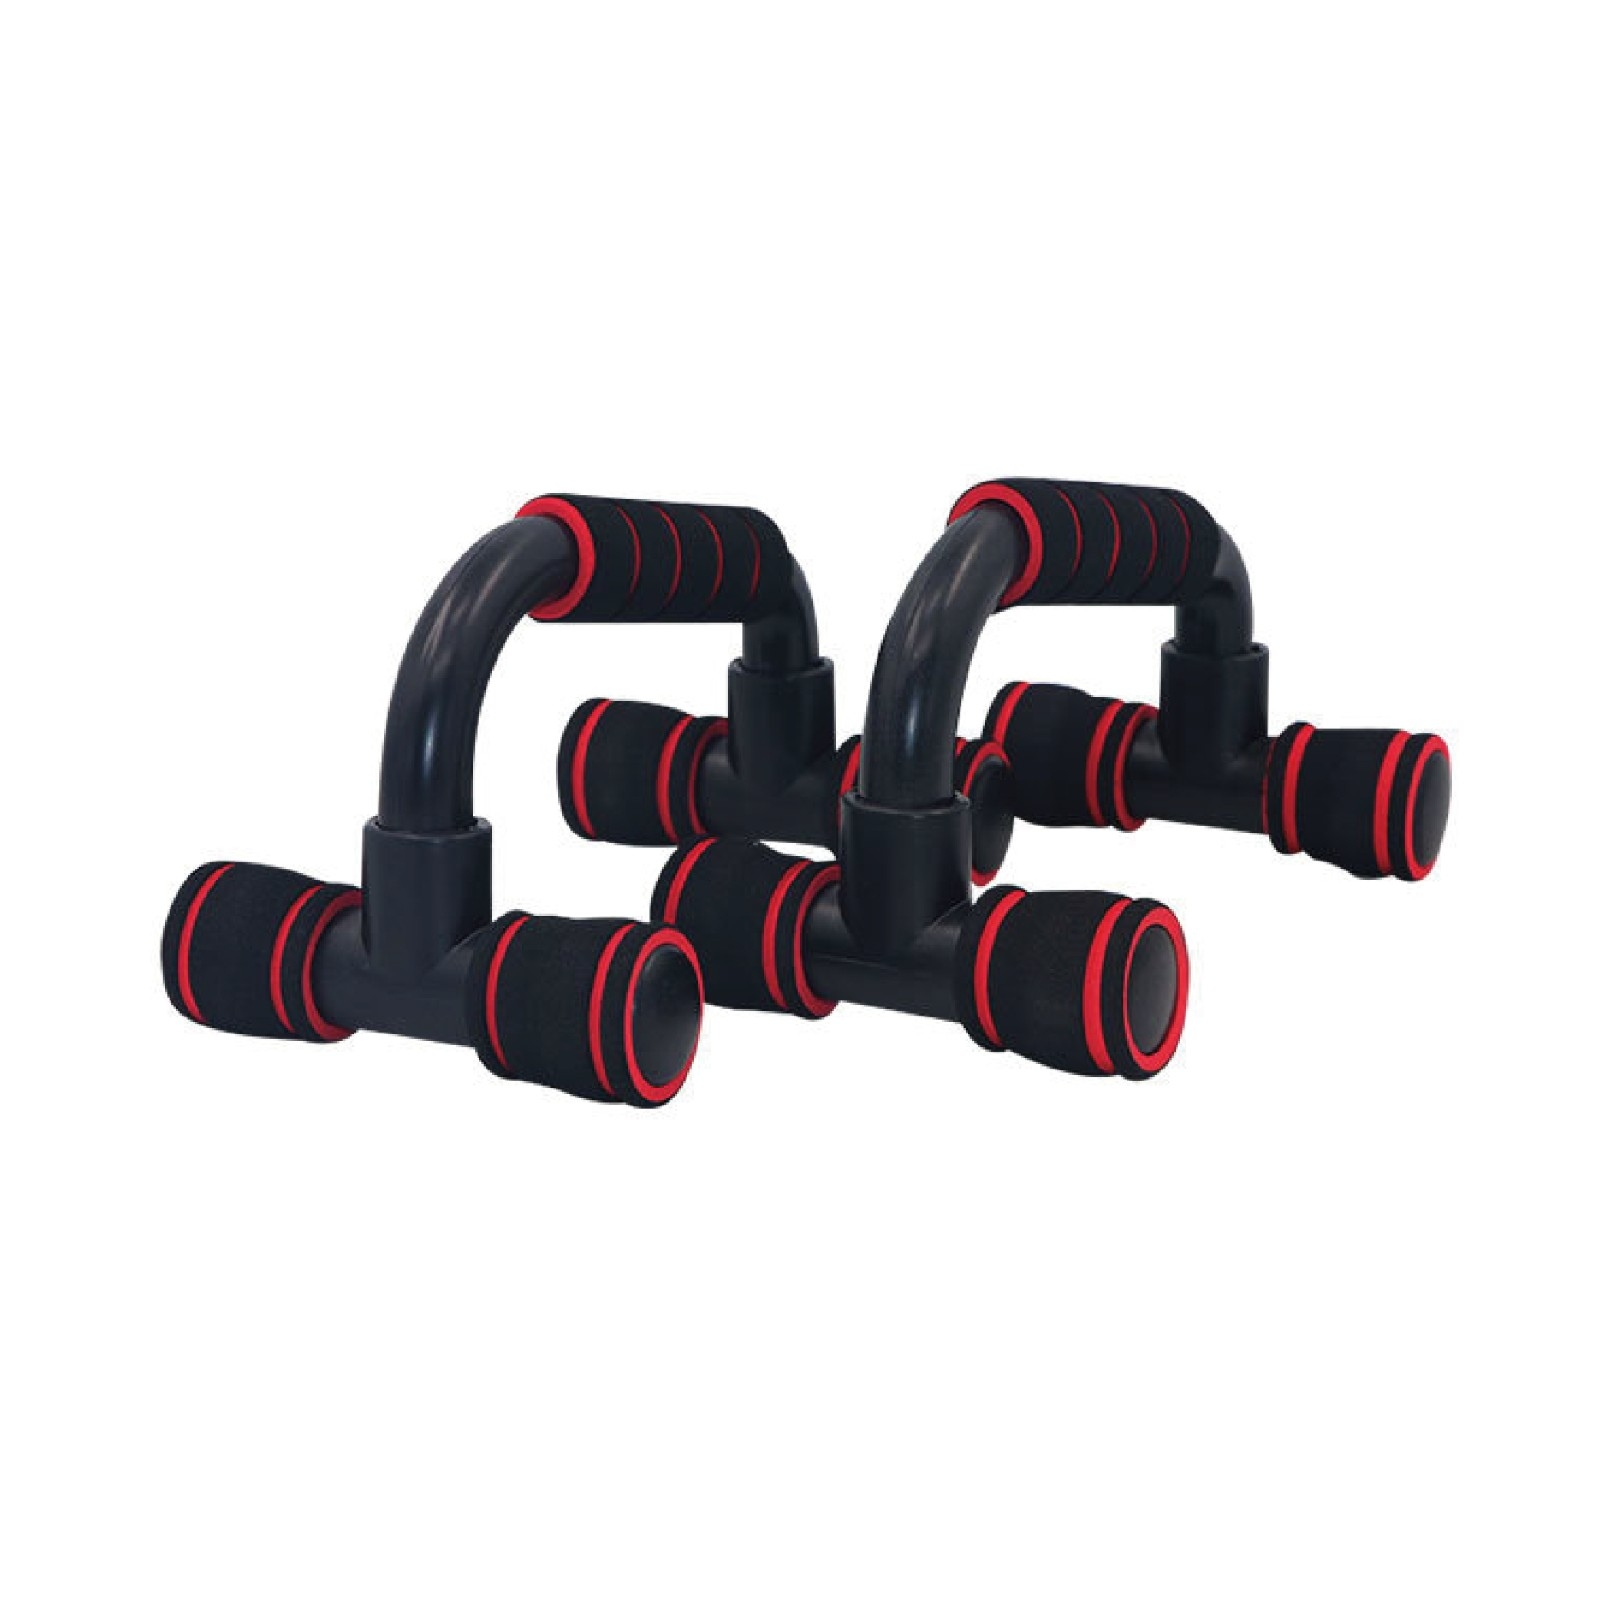 Home Foam Push - Up I-shape Push - Up Fitness Support